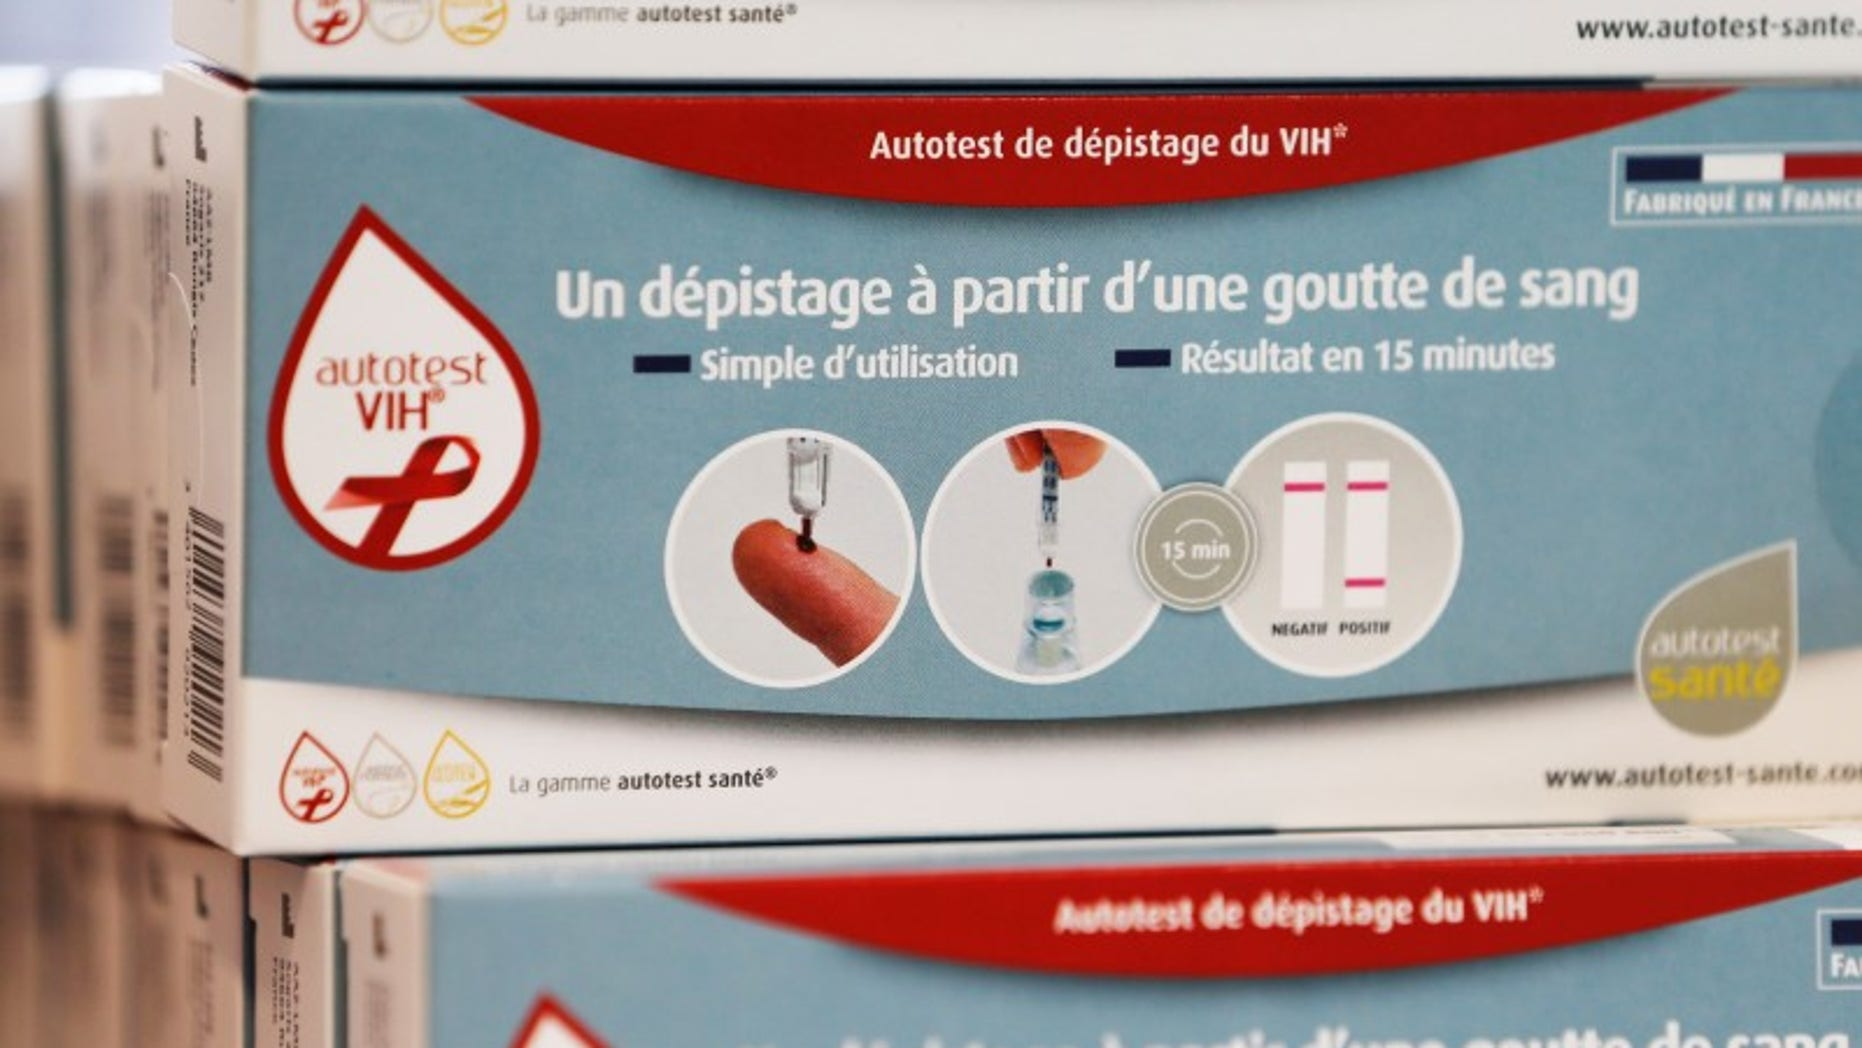 HIV self tests are displayed in a pharmacy in Bordeaux, France, September 15, 2015.   REUTERS/Regis Duvignau